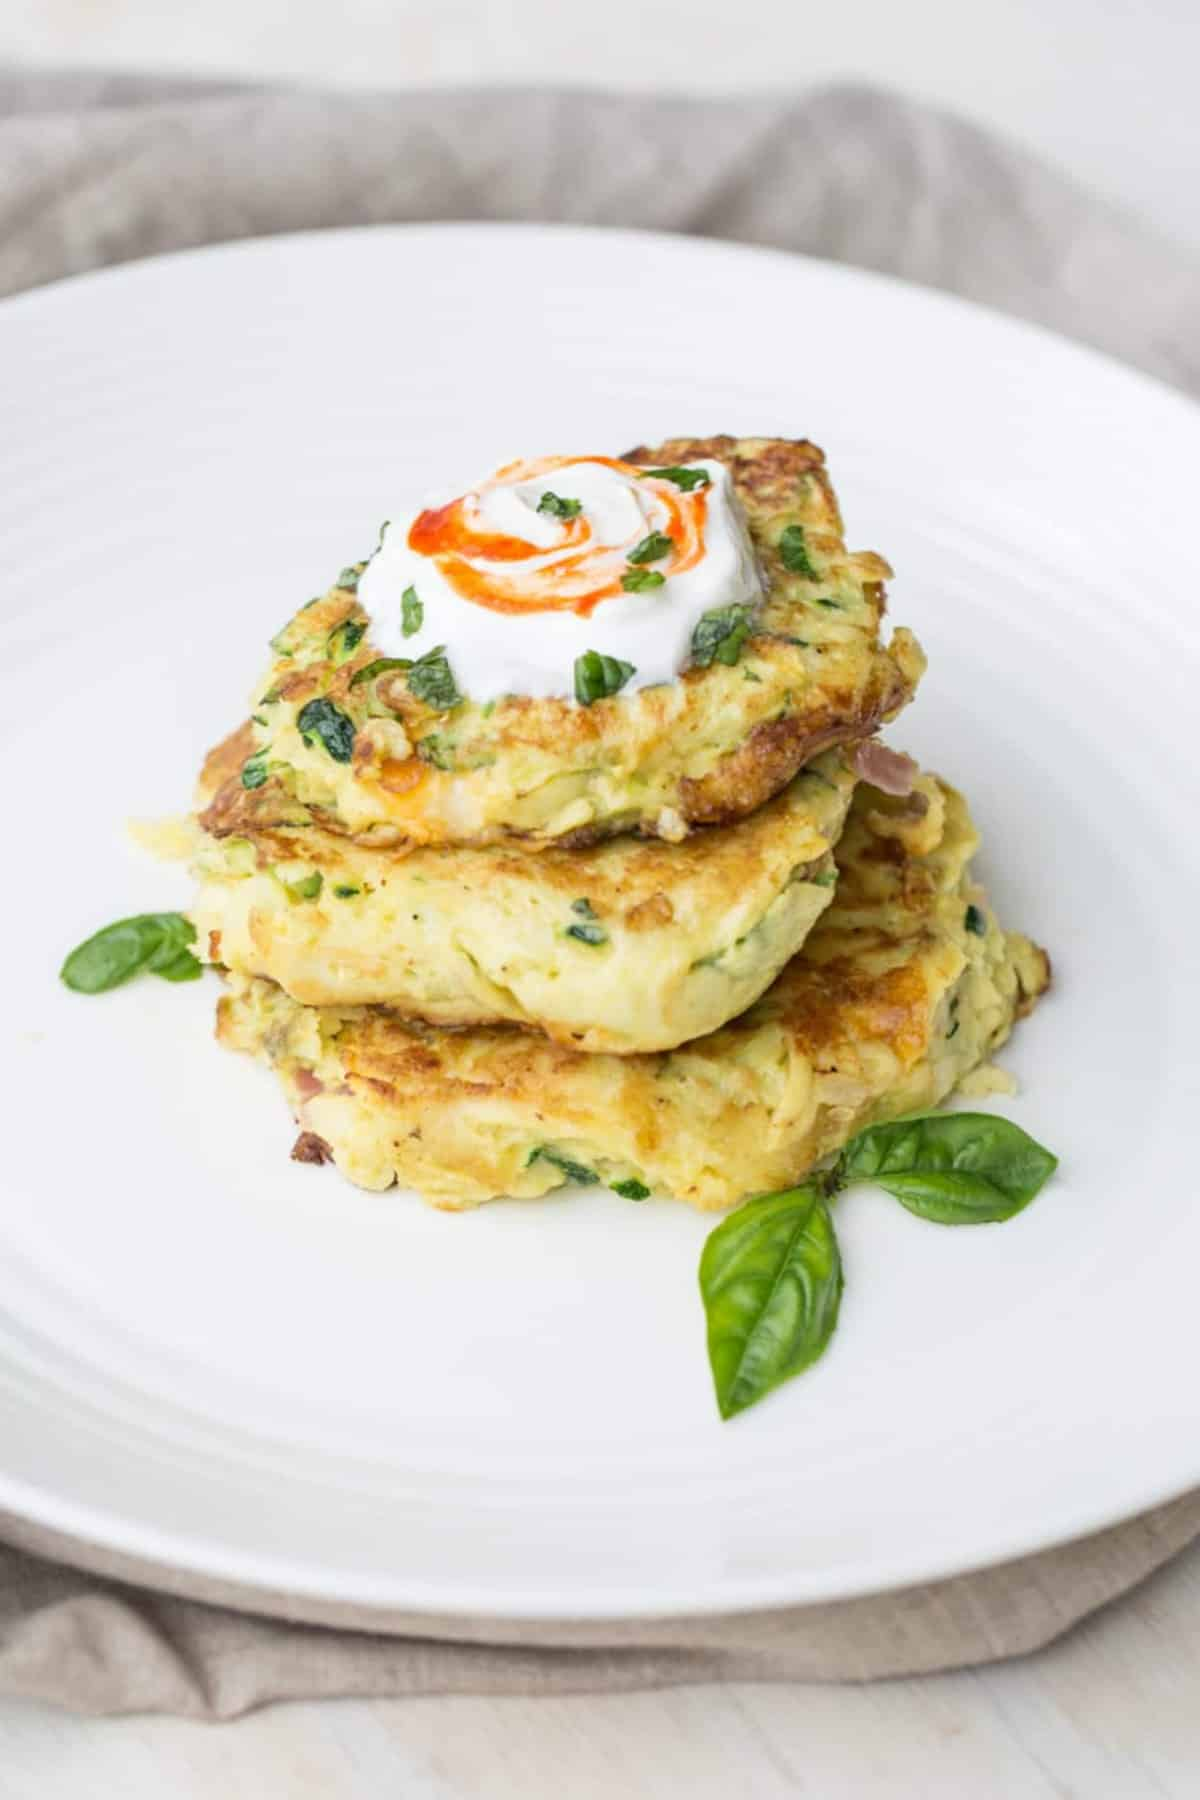 Breakfast zucchini pancakes on a plate topped with sourcream, and basil.